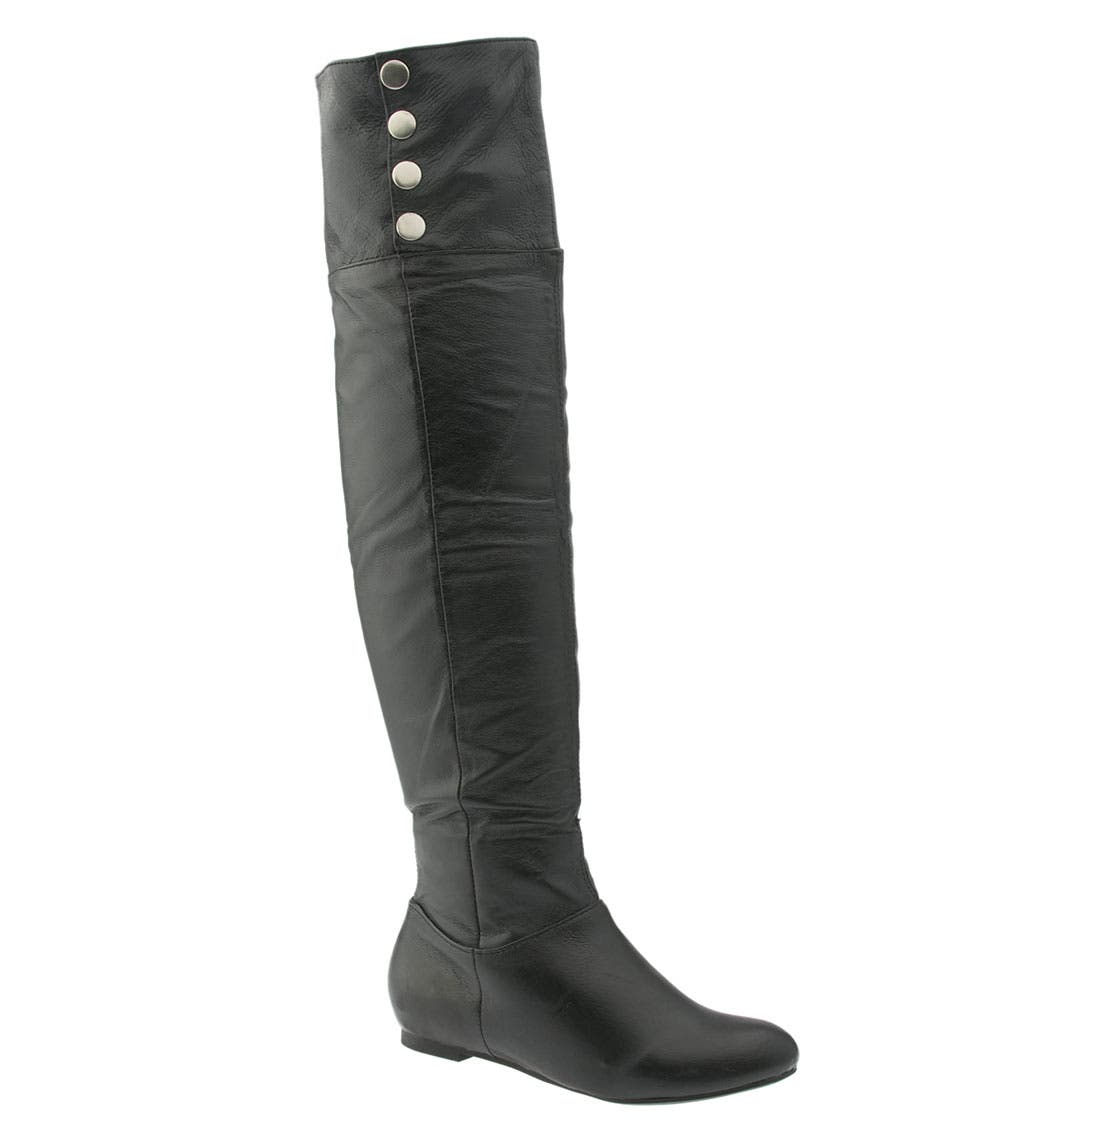 Alternate Image 1 Selected - Chinese Laundry 'Trust Me' Over the Knee Boot